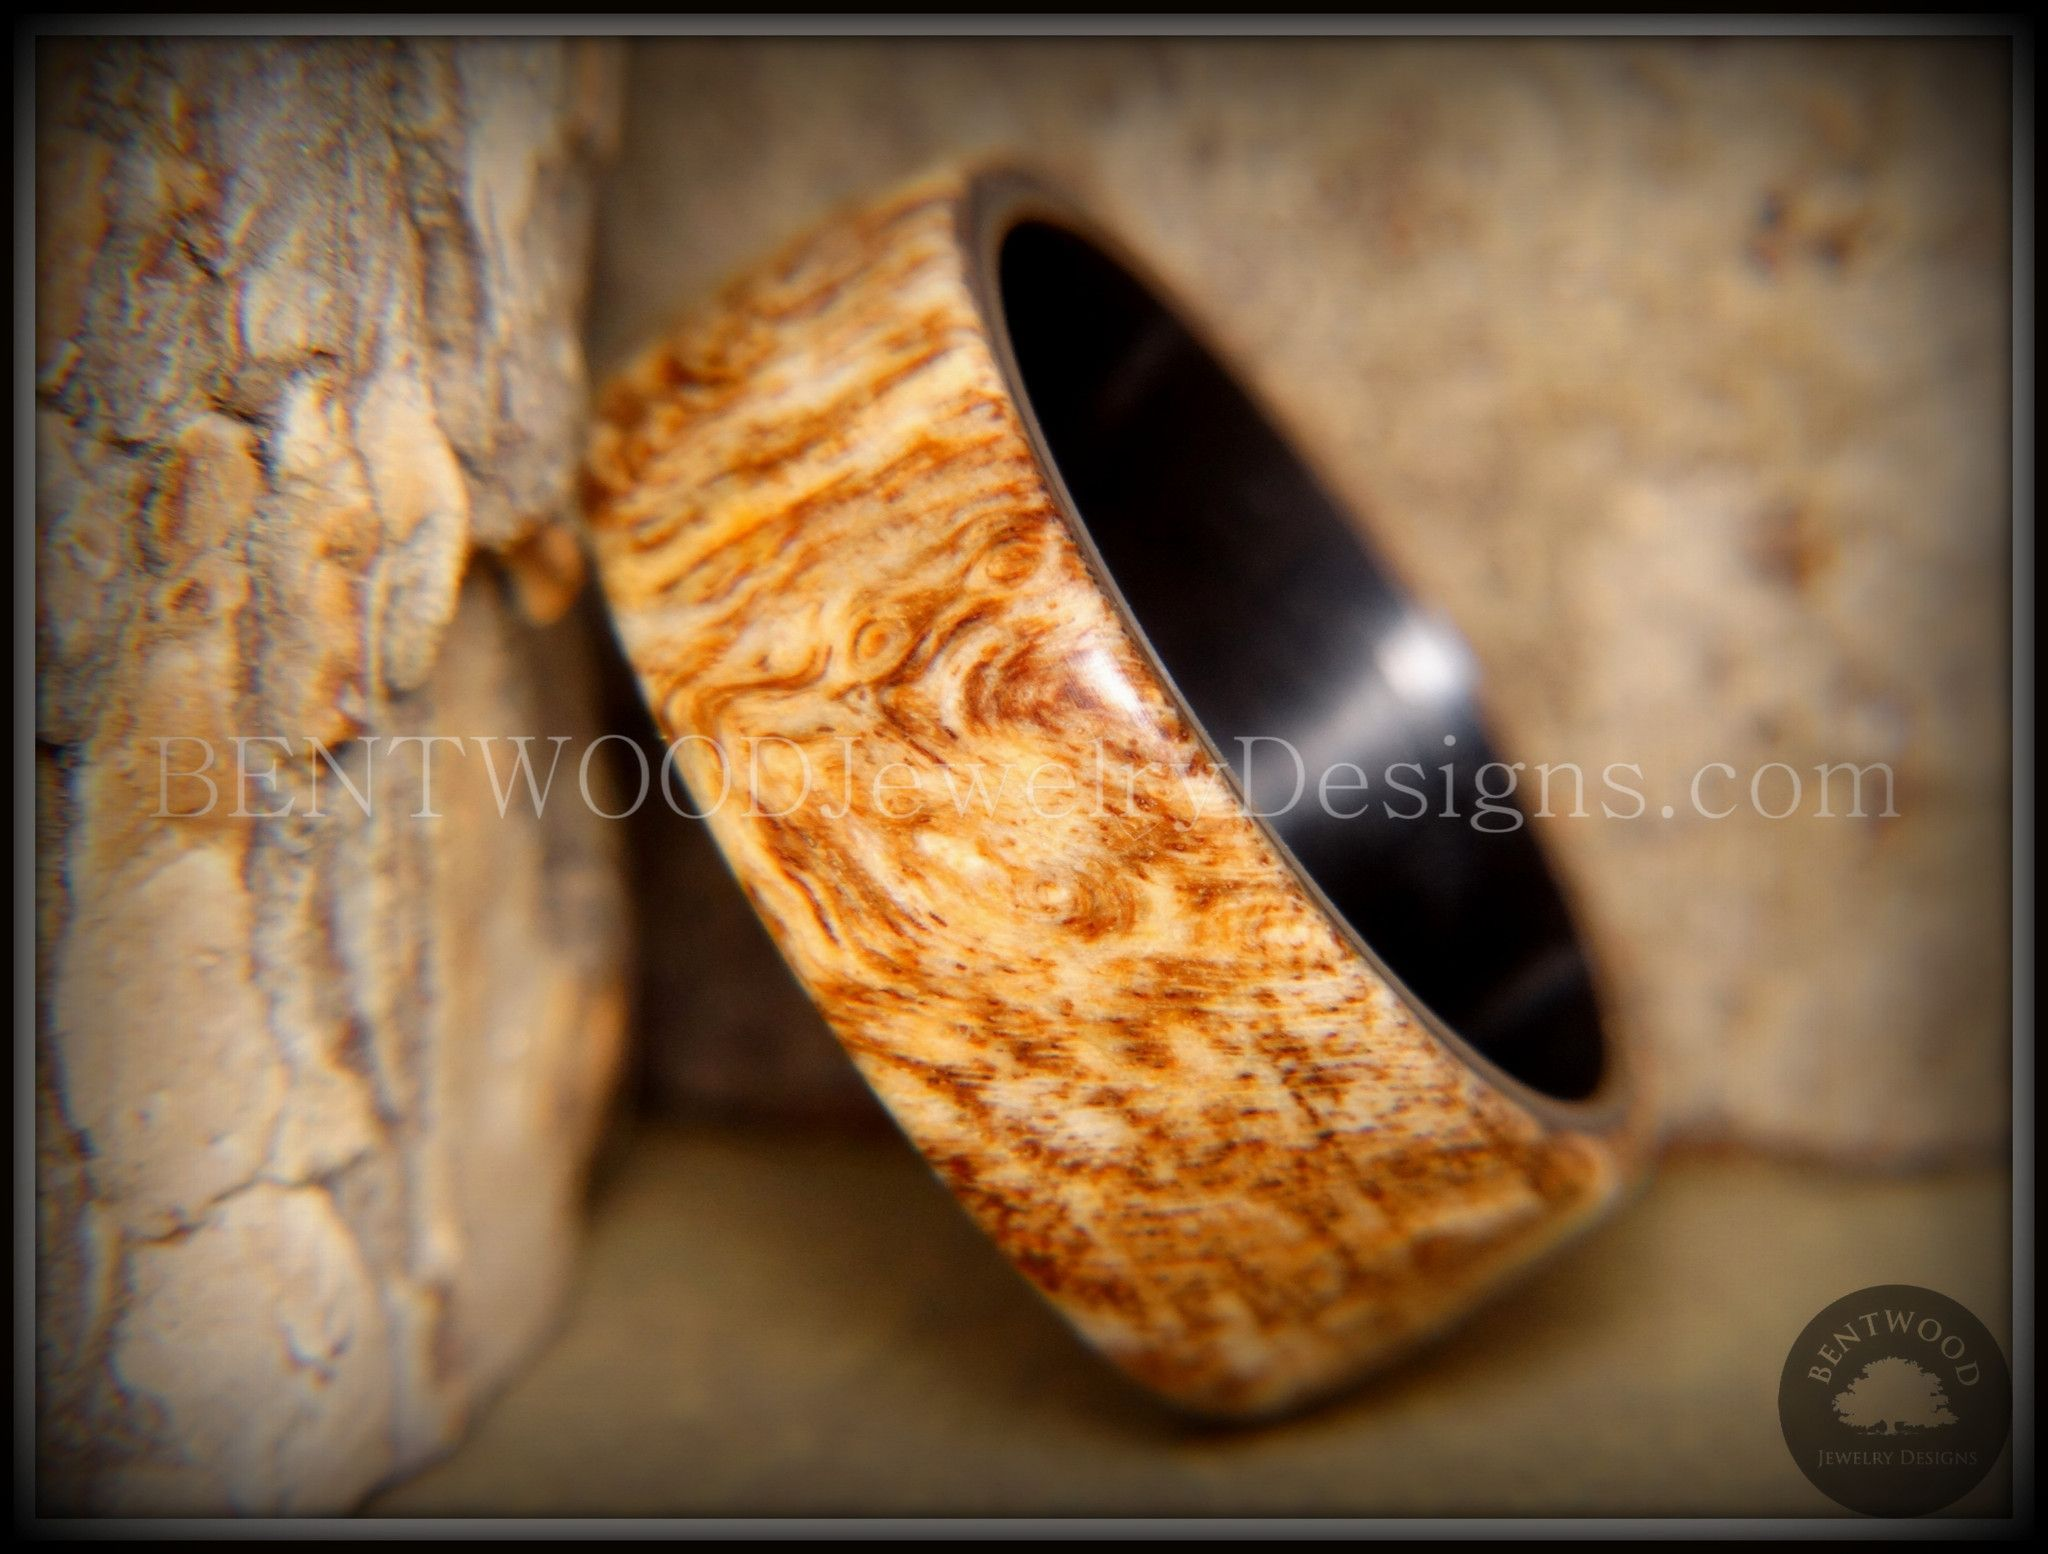 onyx wedding band Bentwood MArbled Maple Burl Wood Ring with Surgical Grade Onyx Black Stainless